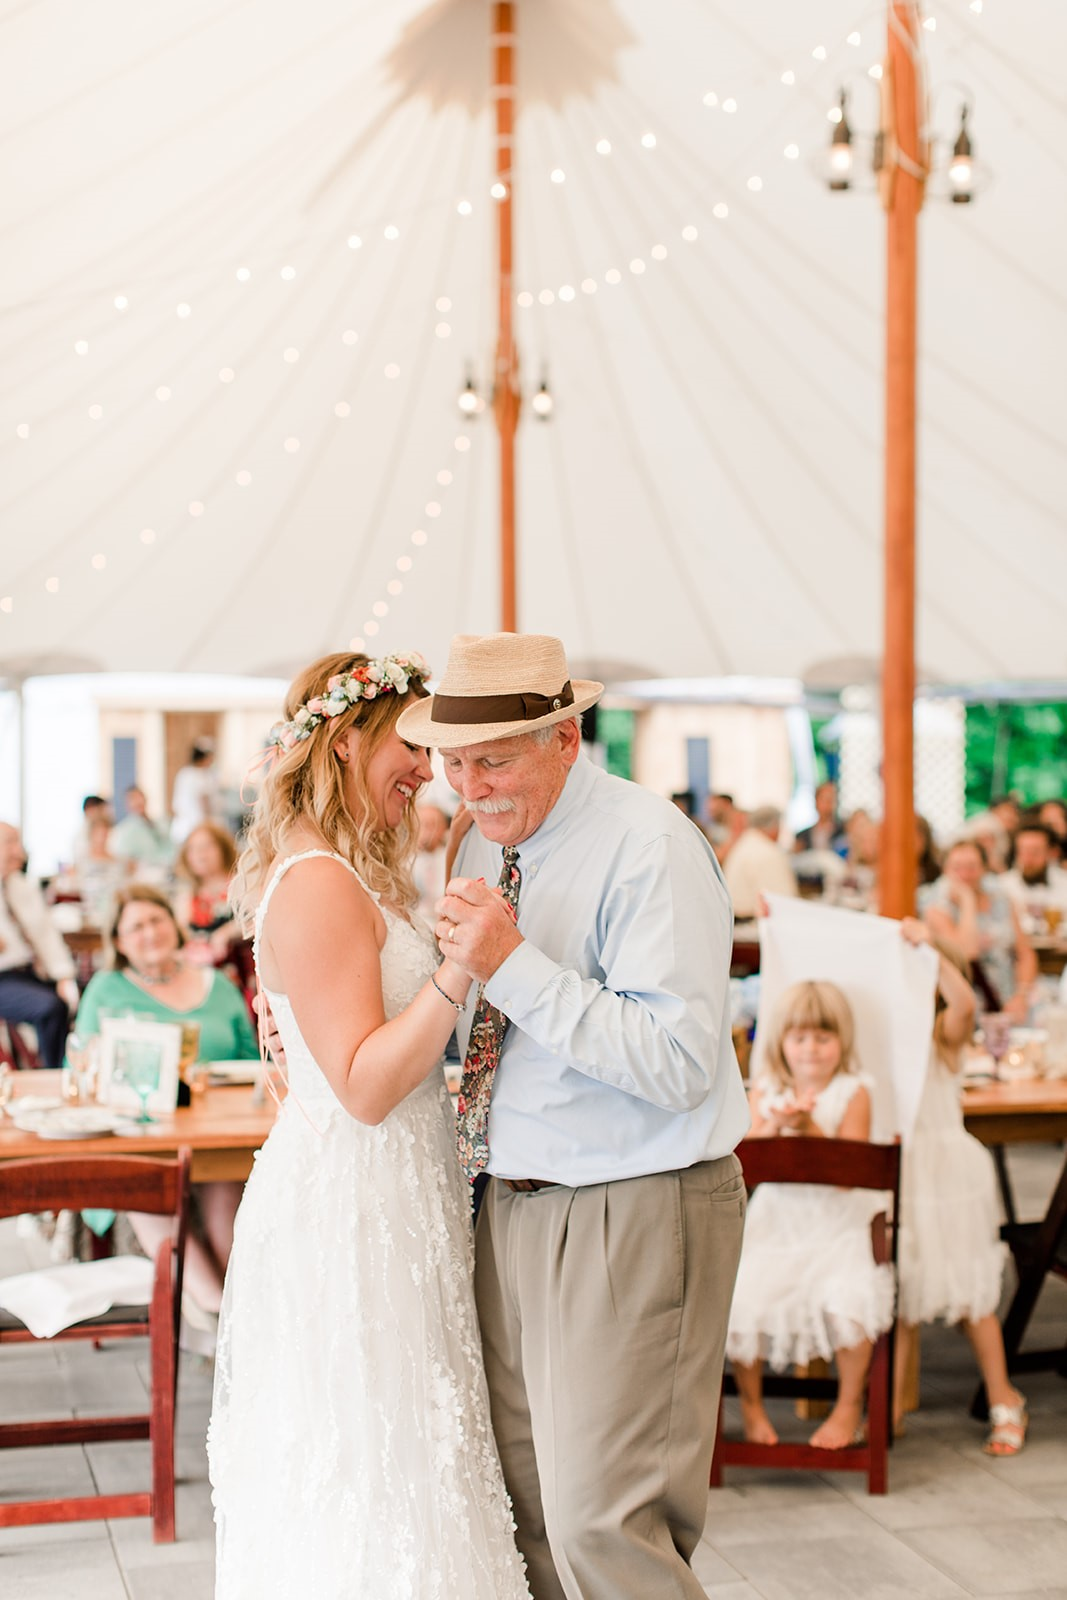 Everything You Need To Know About The 9 Most Common Wedding-Related Events